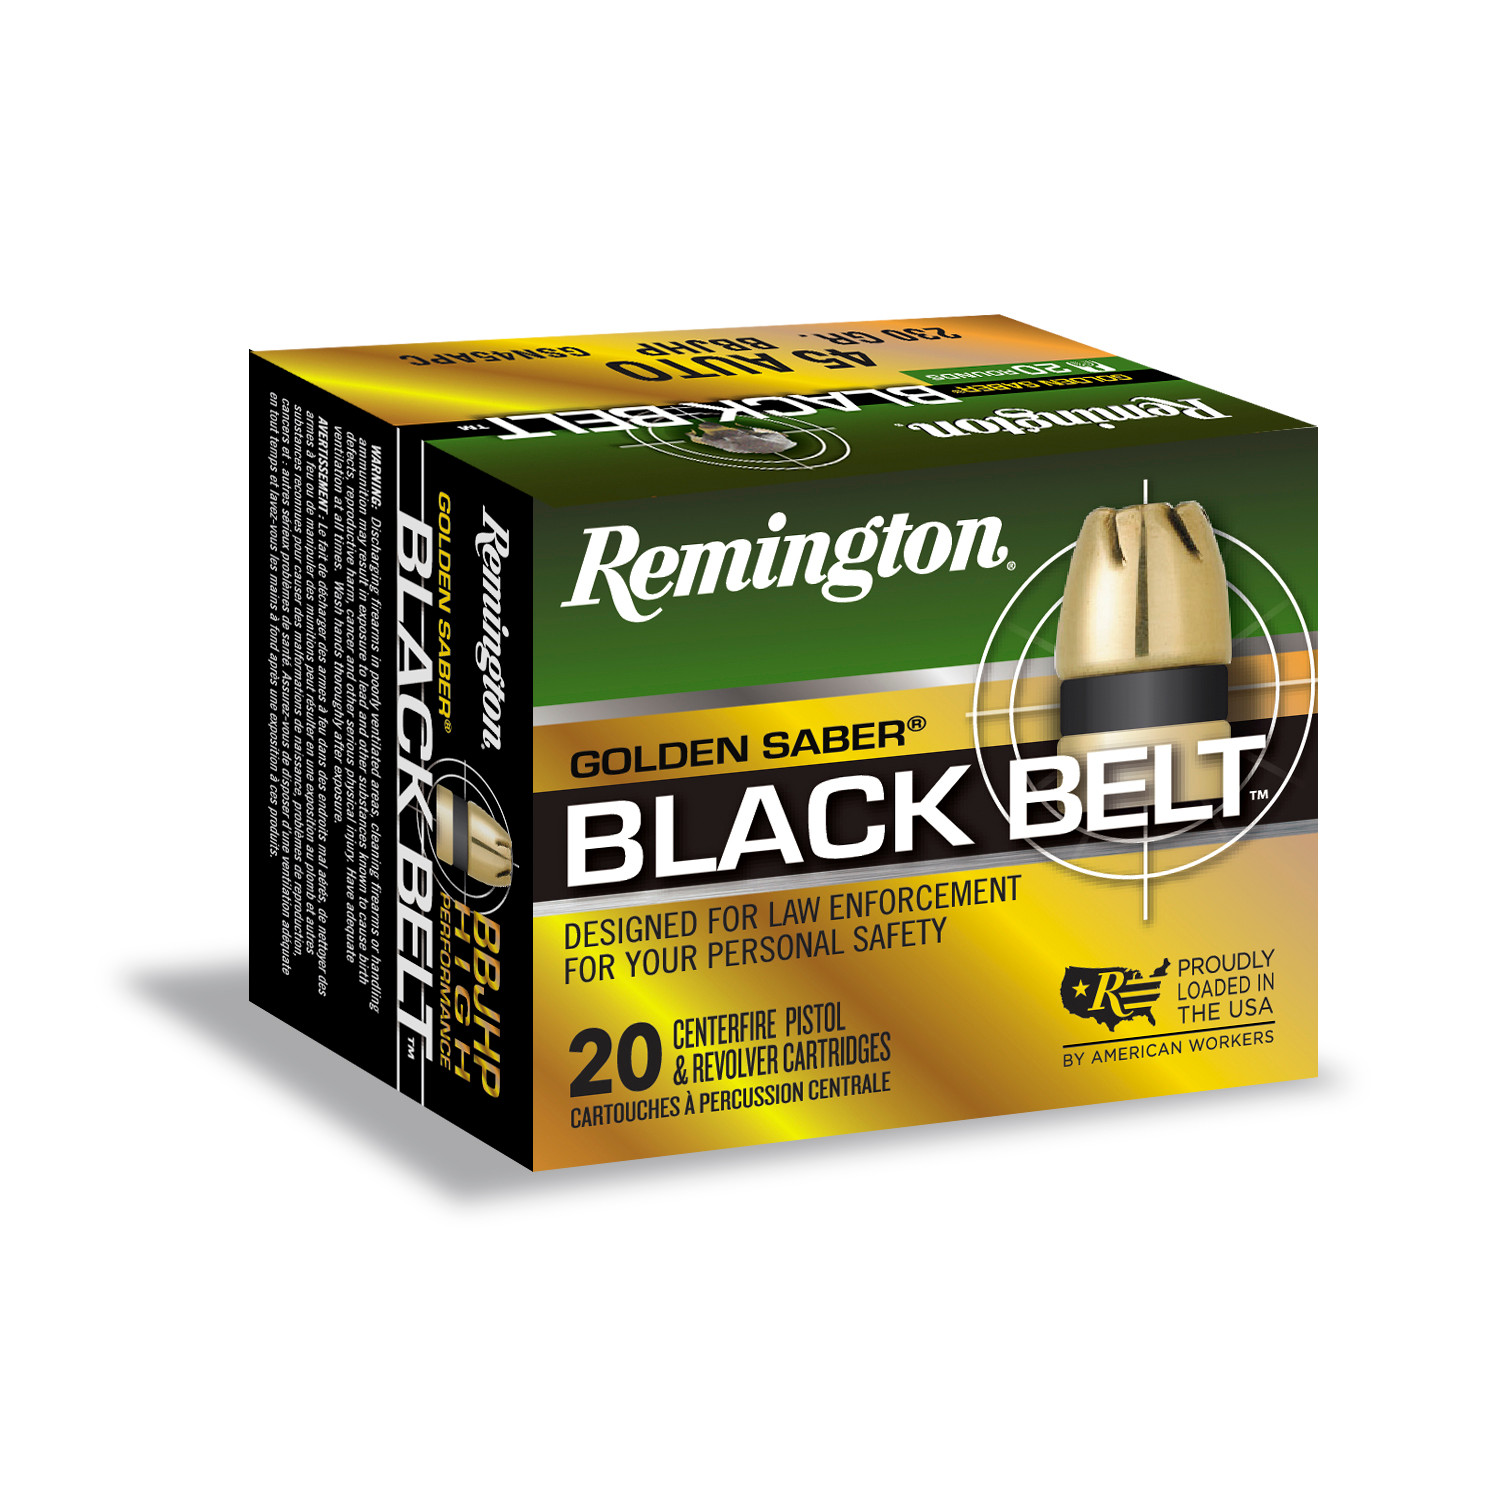 New from Remington: Golden Saber Black Belt 45 Auto